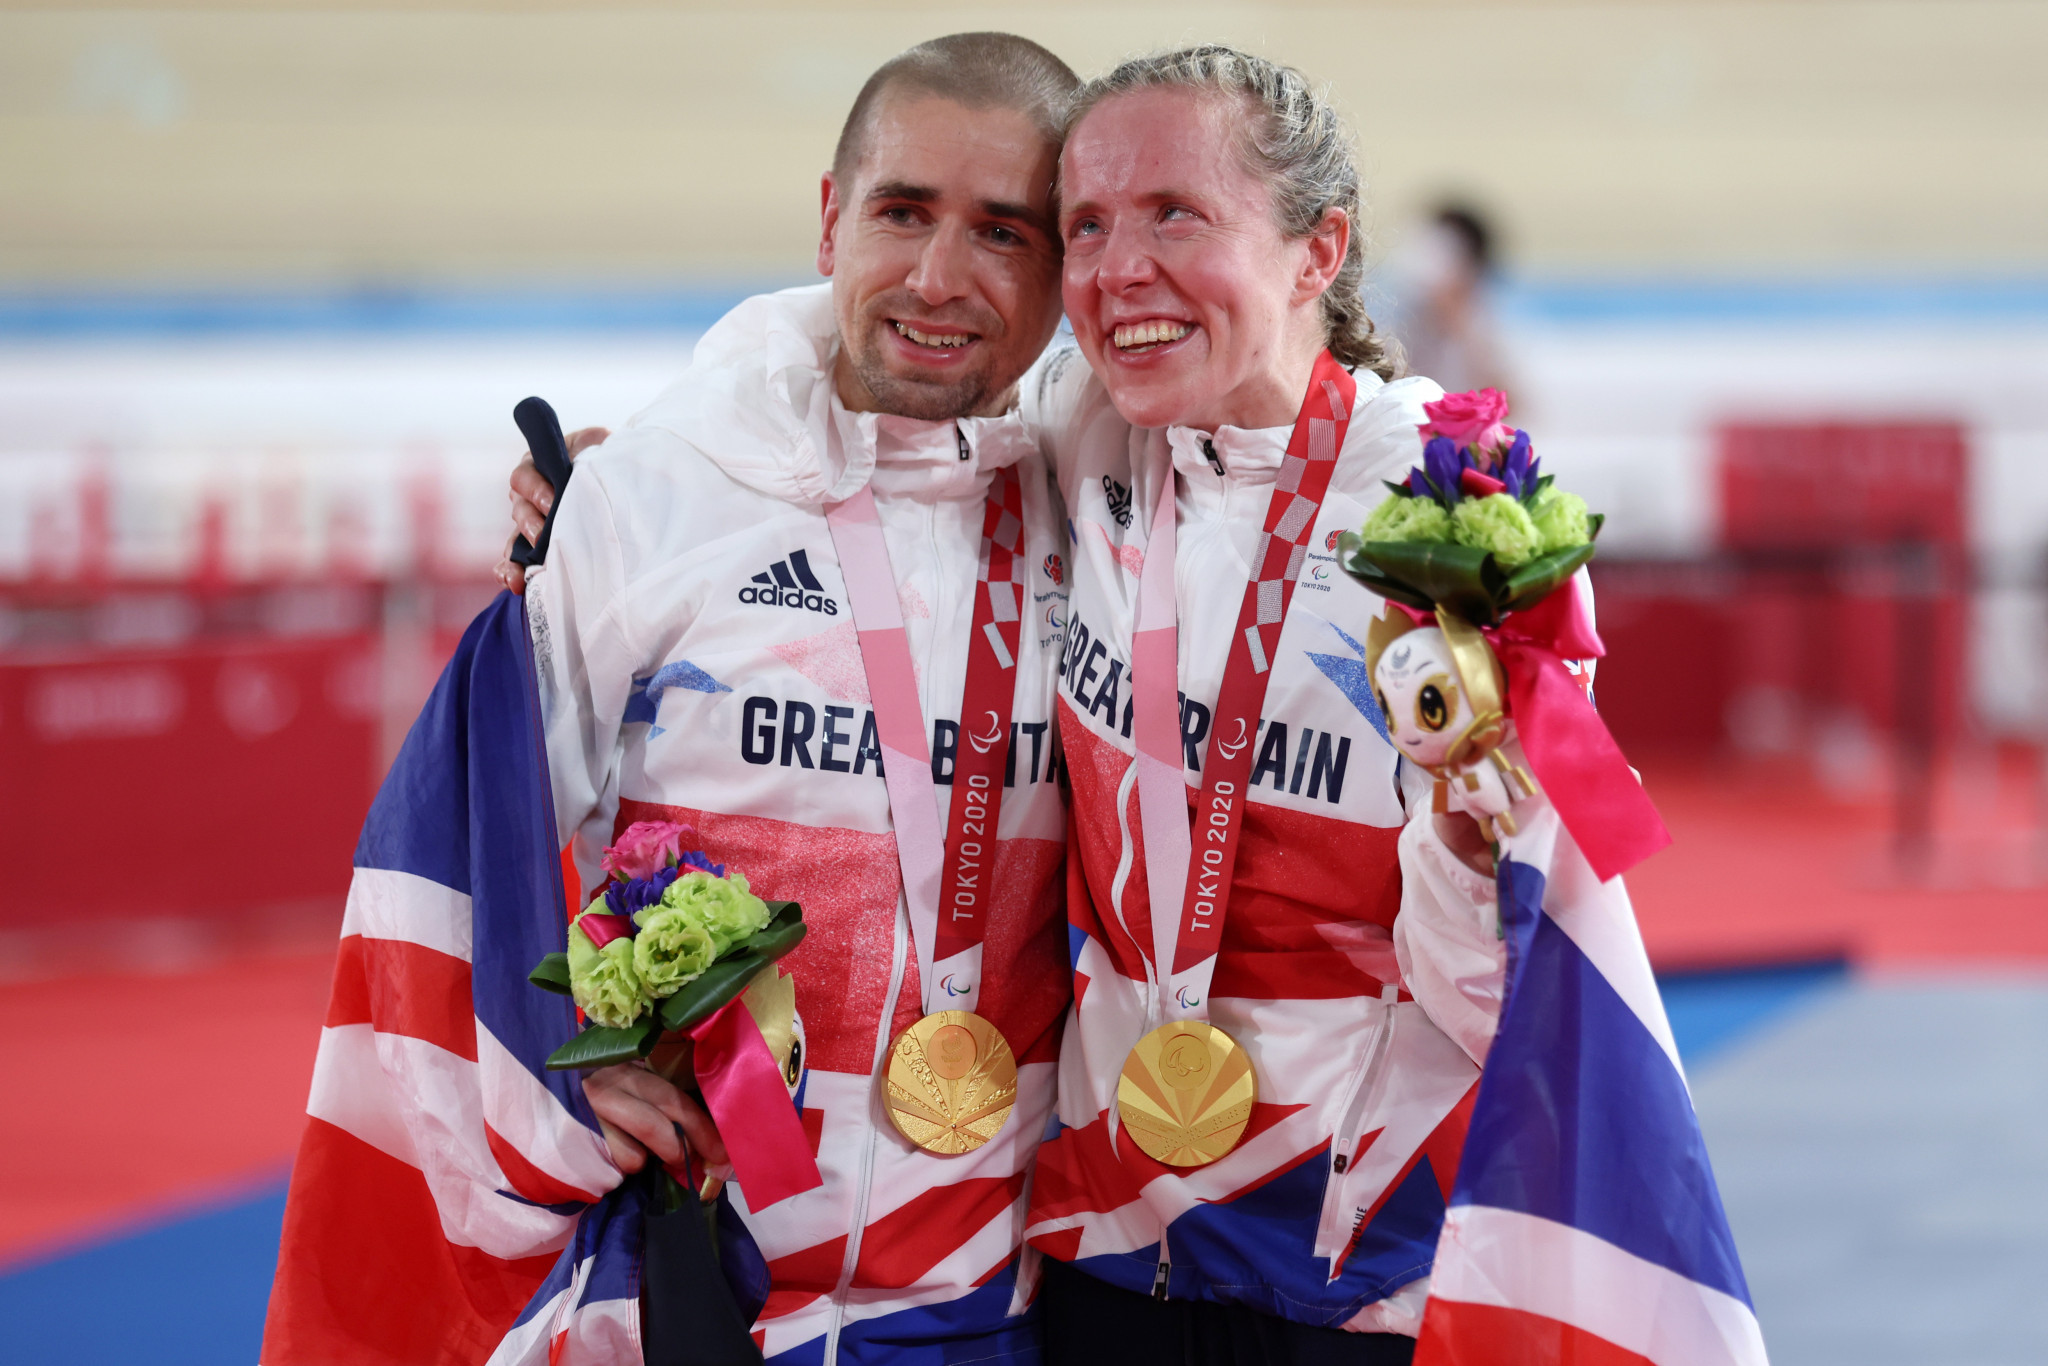 Britain claim three golds as track cycling concludes at Tokyo 2020 Paralympics